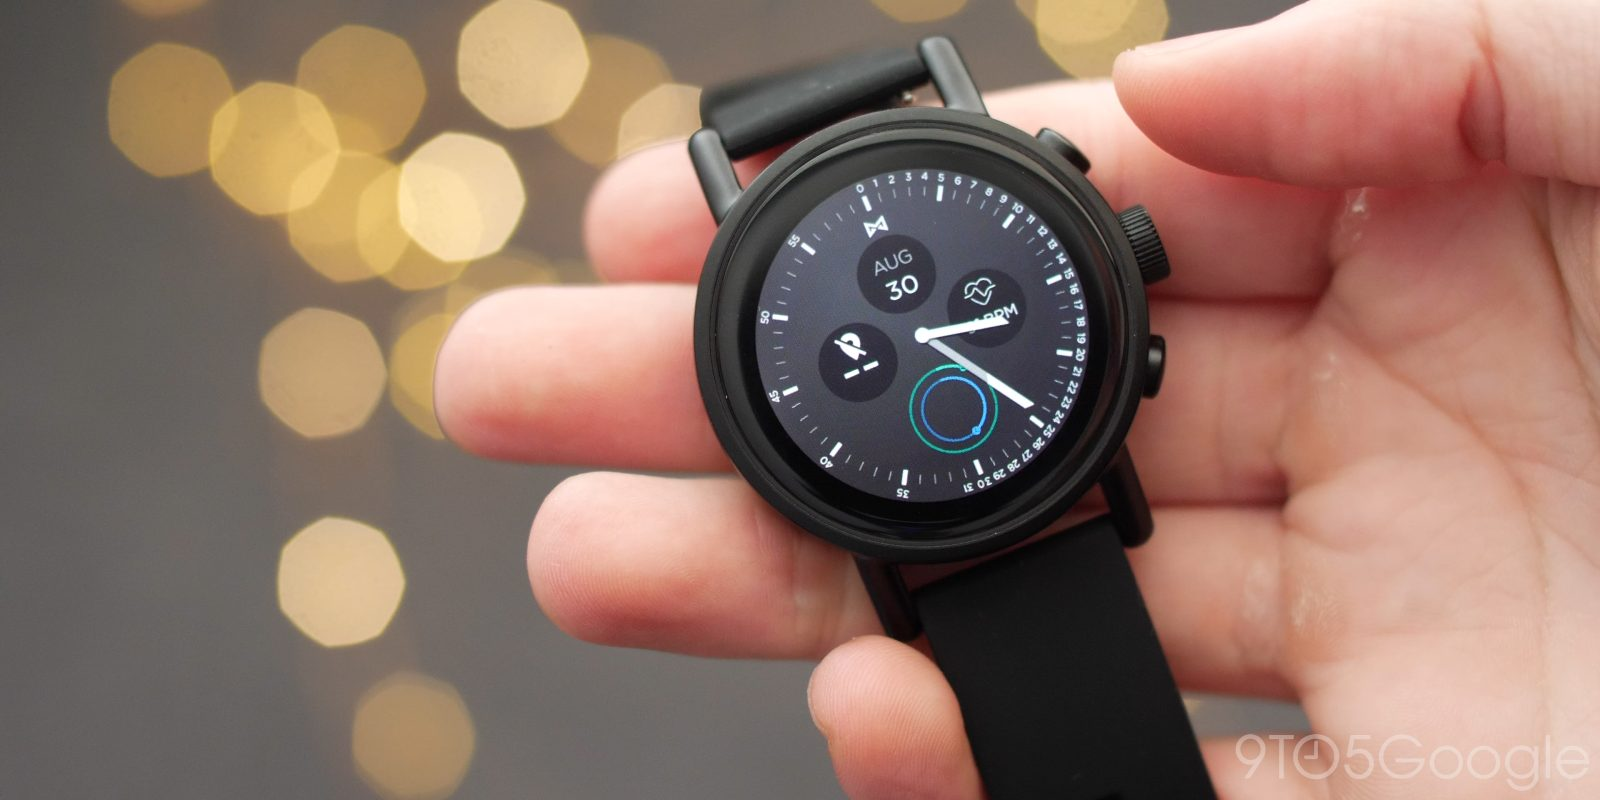 Smartwatch That Doesn'T Need To Be Near Phone